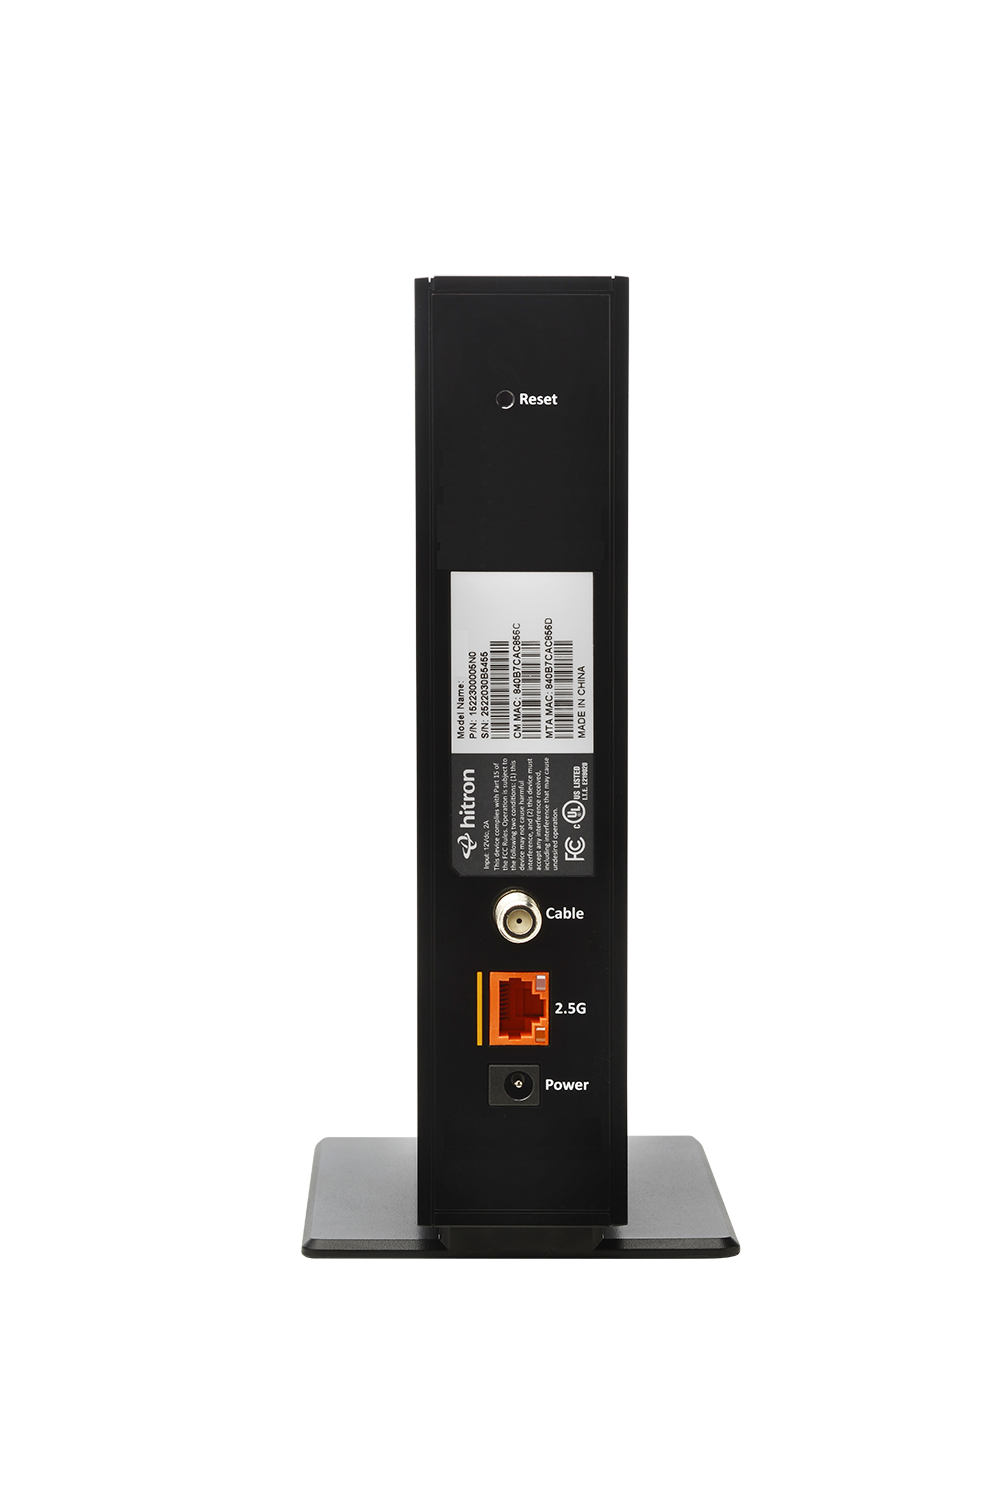 DOCSIS 3.1 Cable Modem from Hitron - CODA57